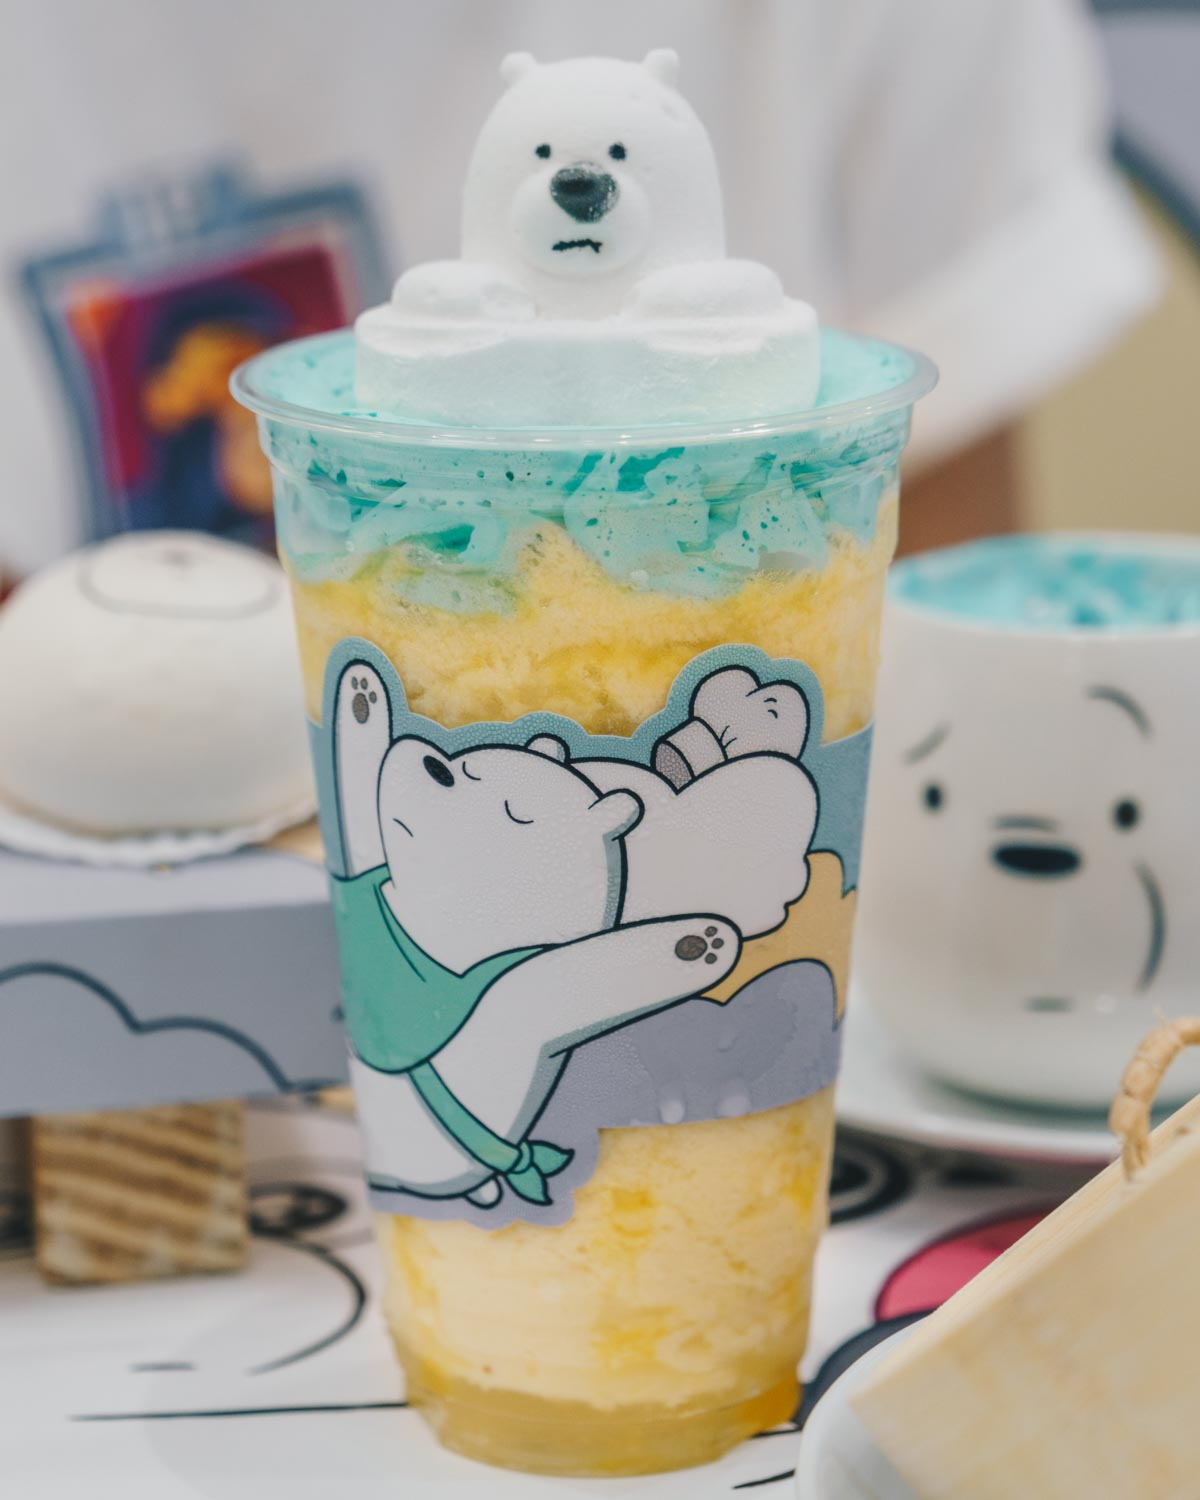 We Bare Bears Cafe - Mango Tango Frappe